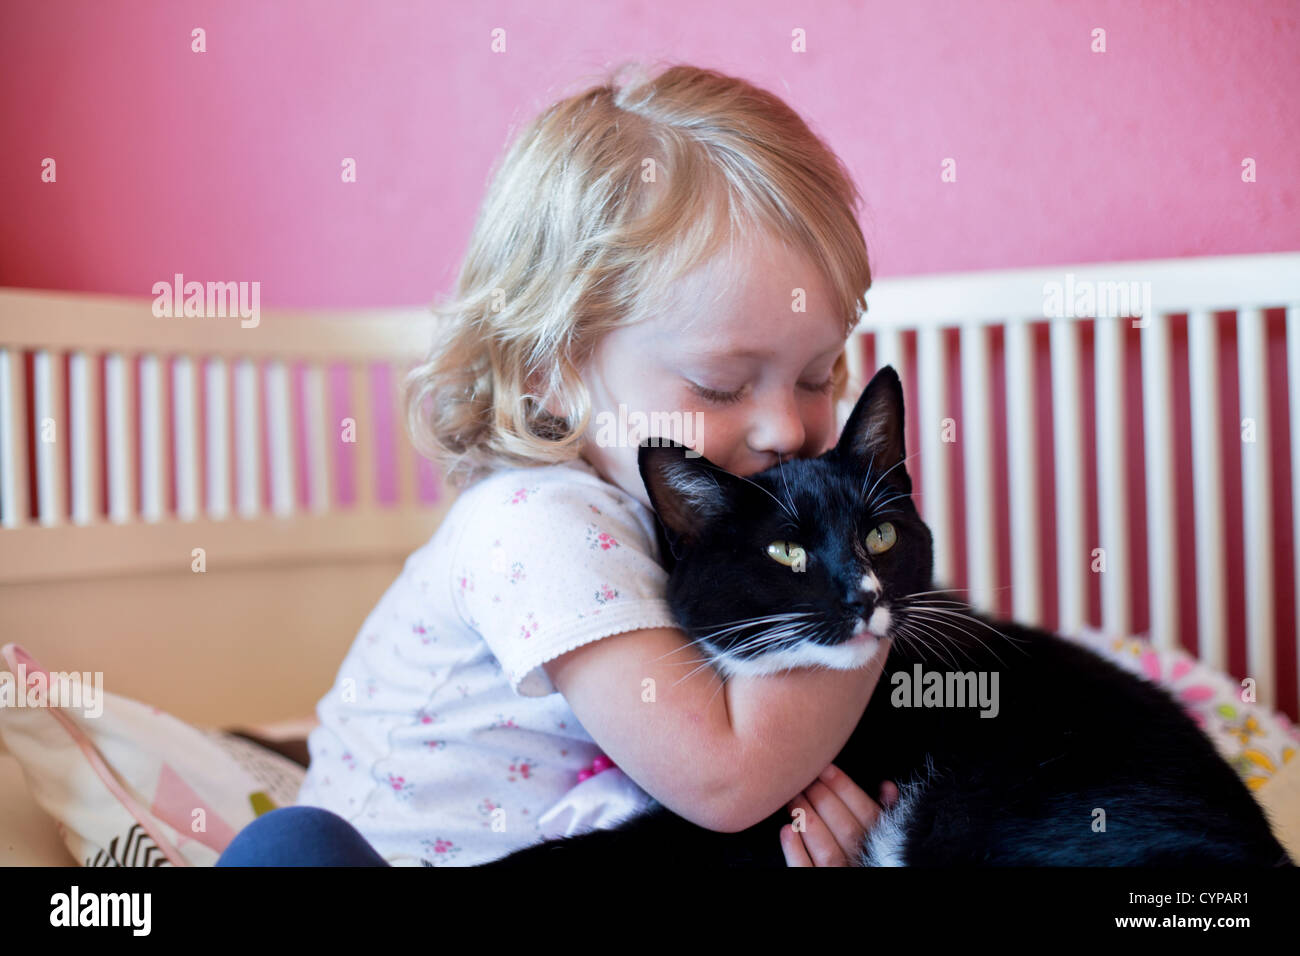 Toddler girl hugging her cat. Stock Photo